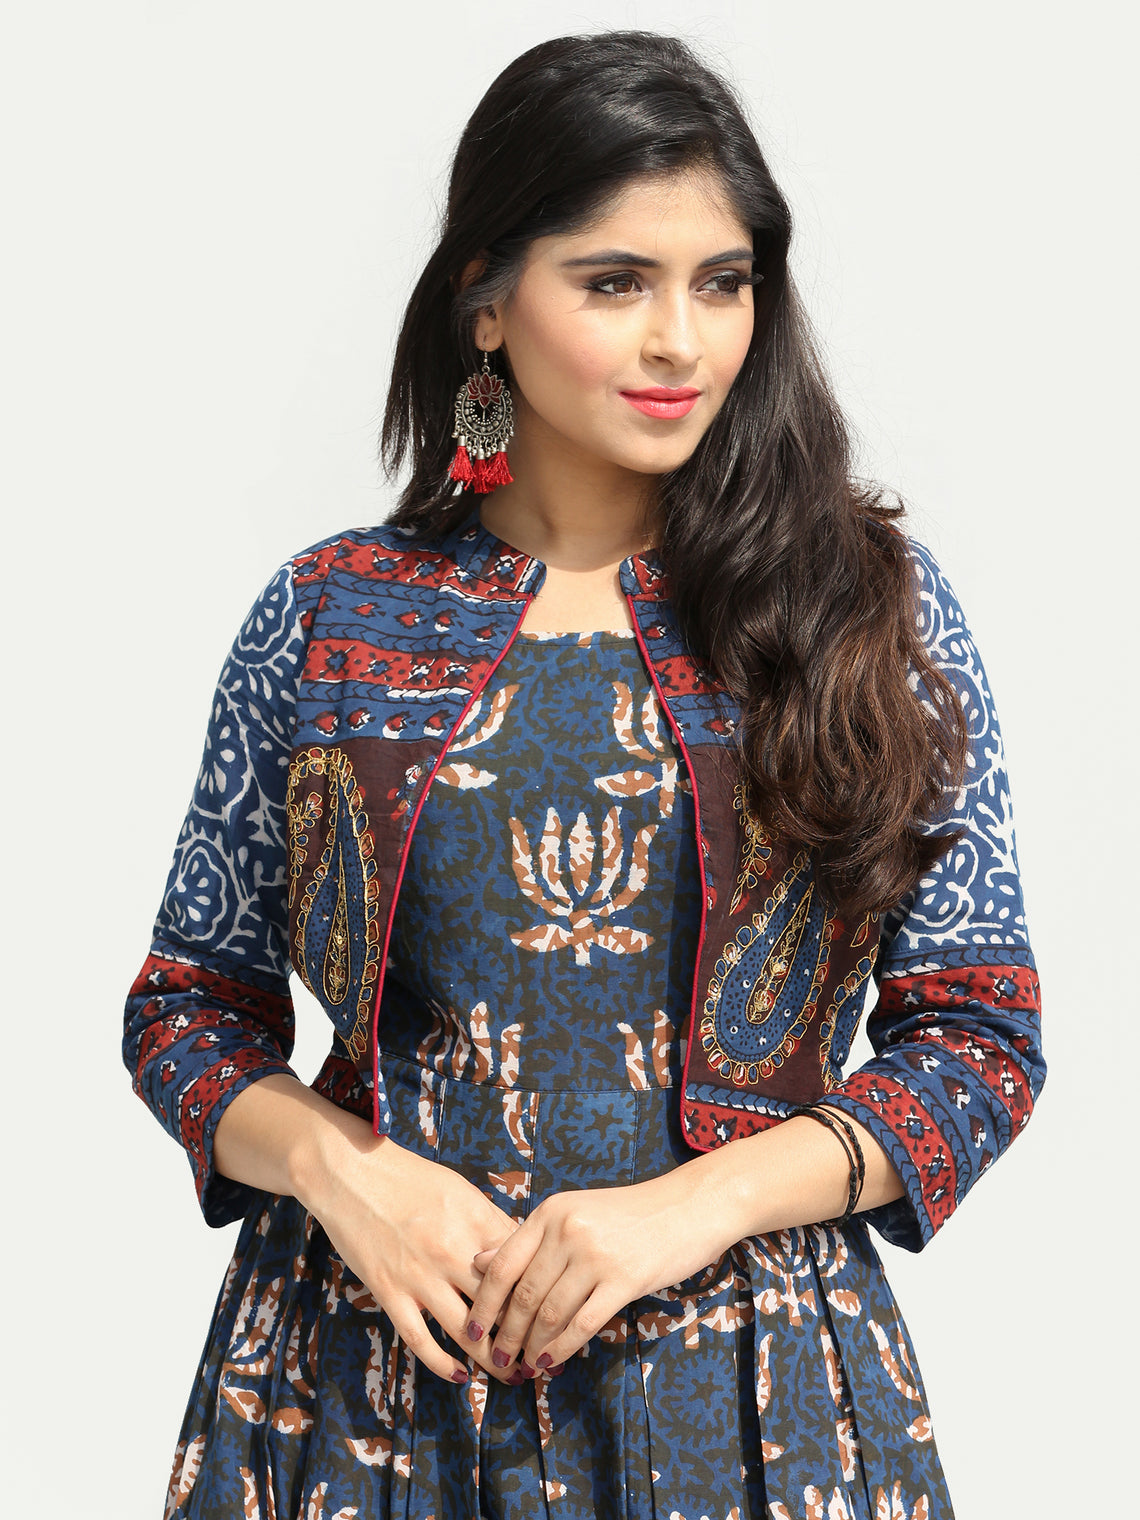 Naaz Roheen - Hand Block Printed Long Cotton Box Pleated Embroidered Jacket Dress - DS98F003